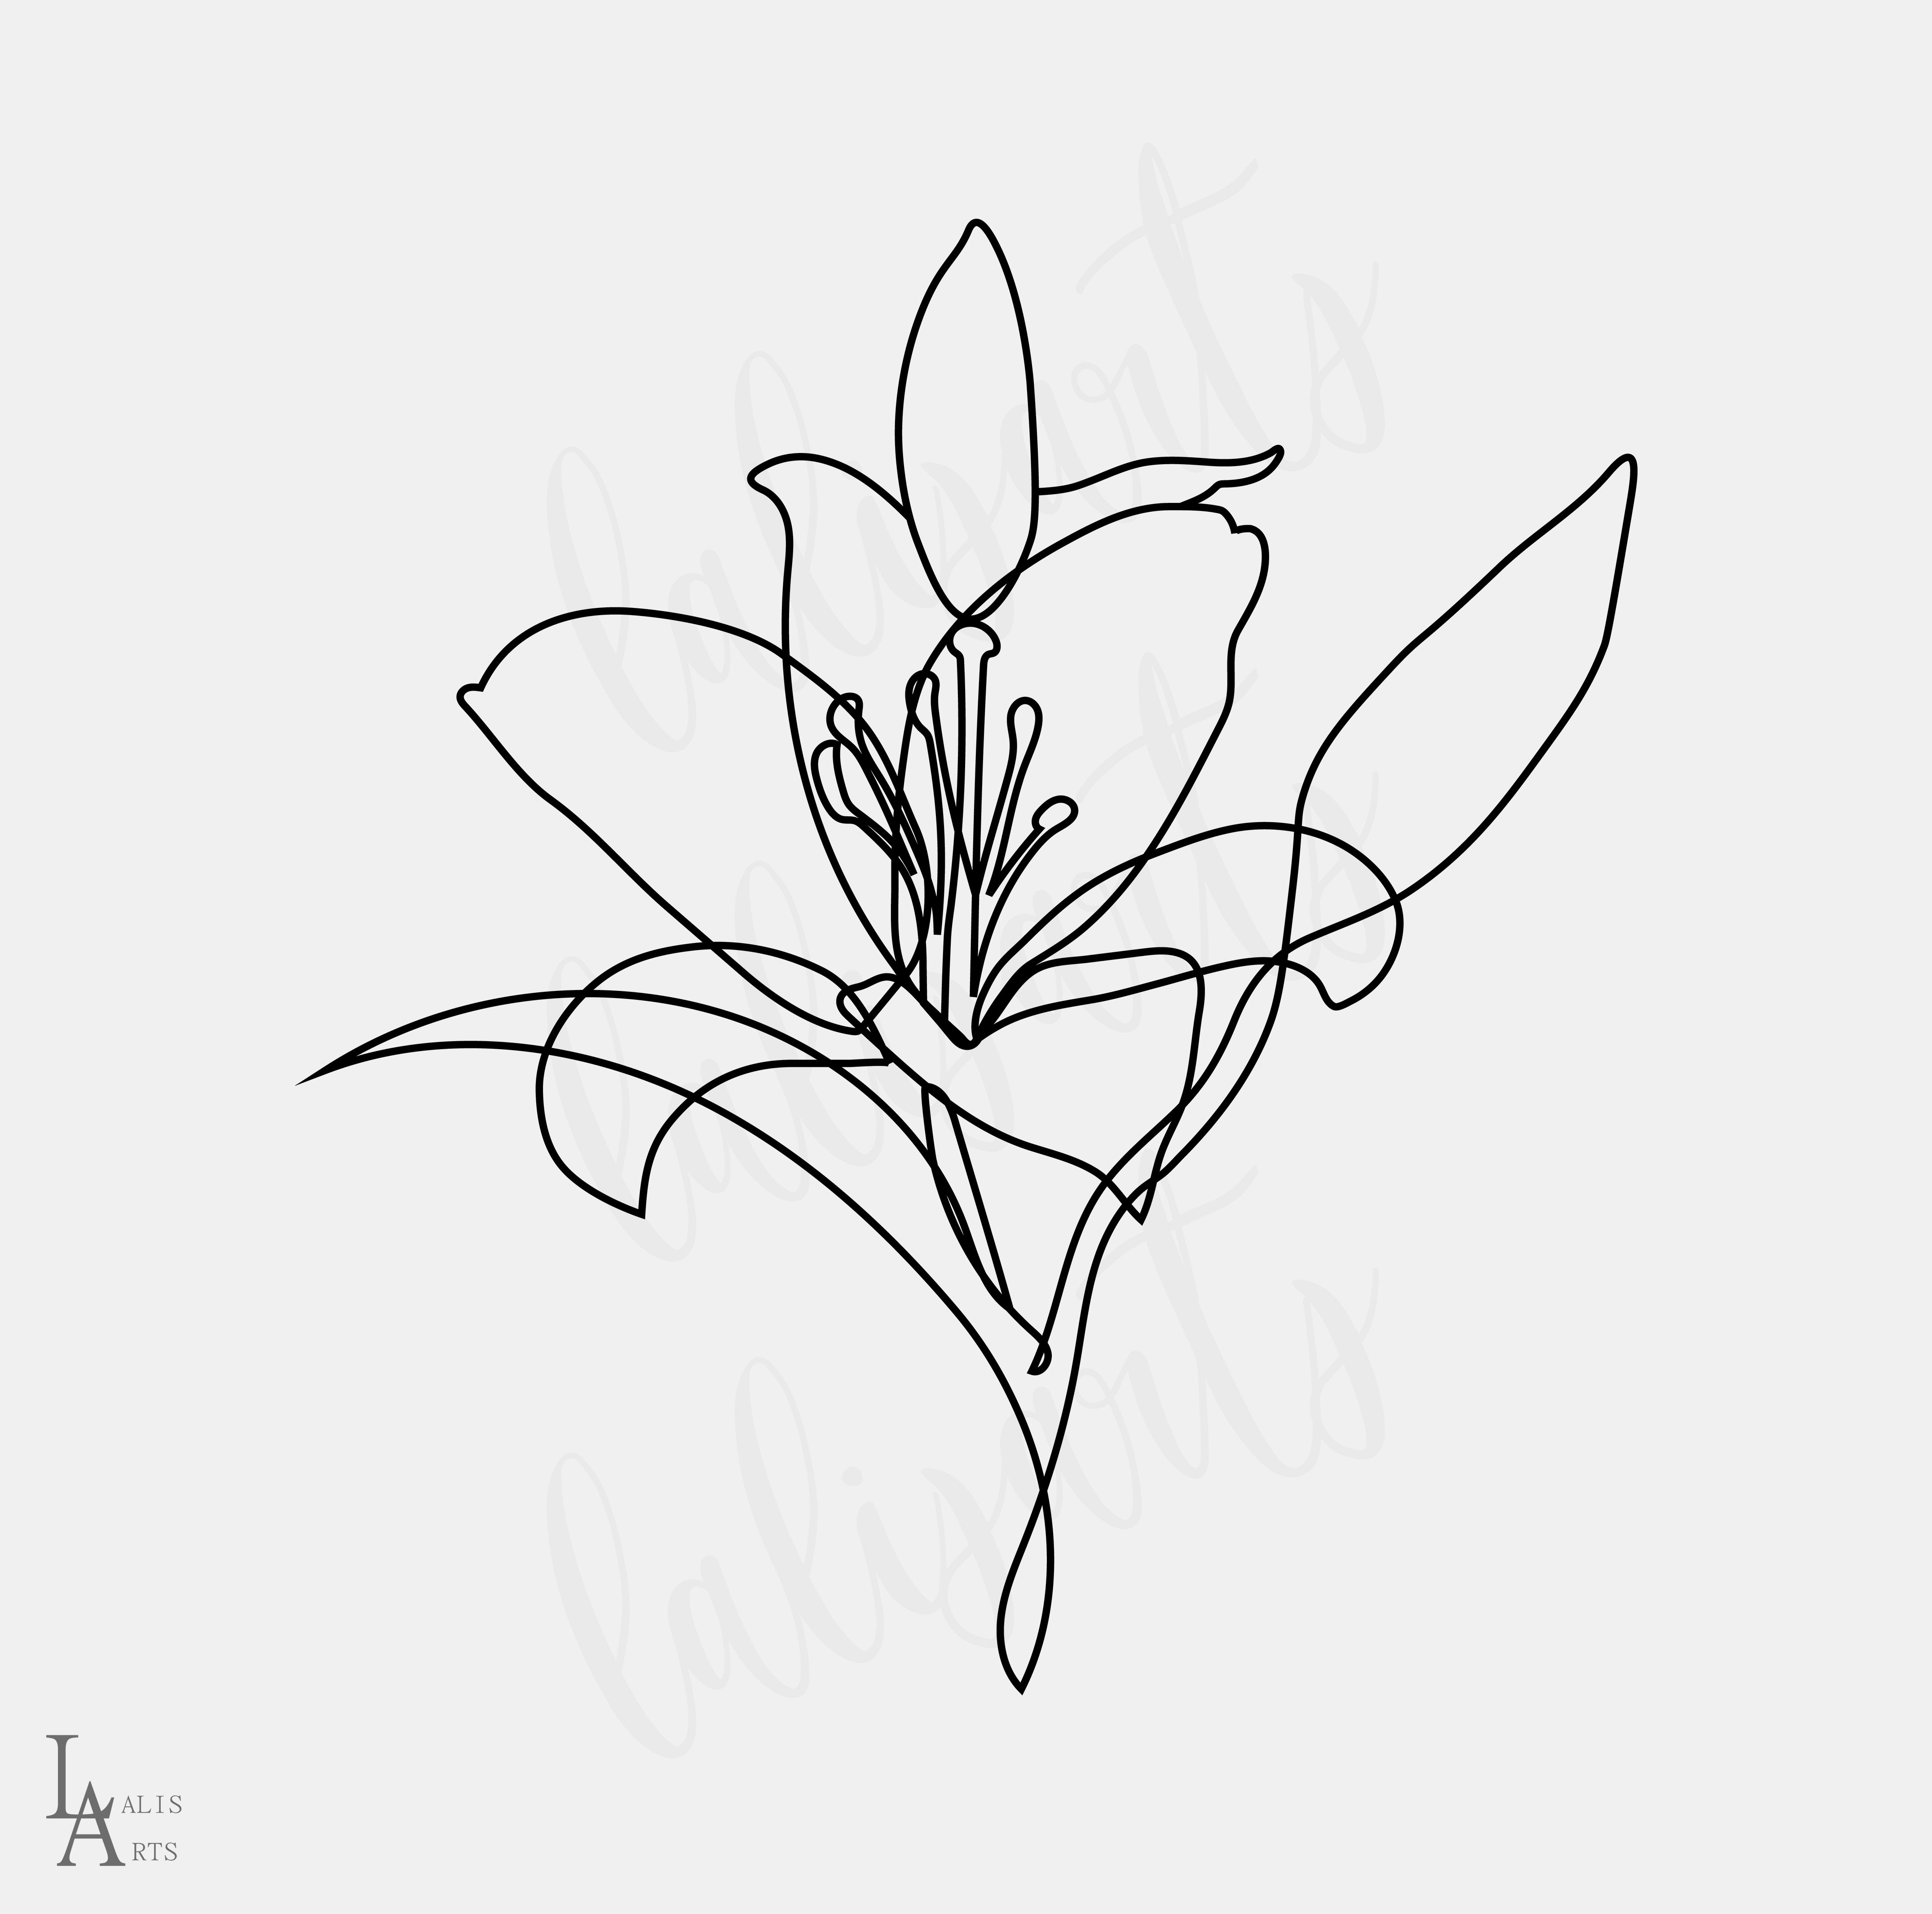 Lily Floral Sketch Clipart Png Digital Design Download Sublimation Graphics Png Continuous Flower Illustration Lalis Arts Lilies Drawing Flower Illustration Flower Drawing